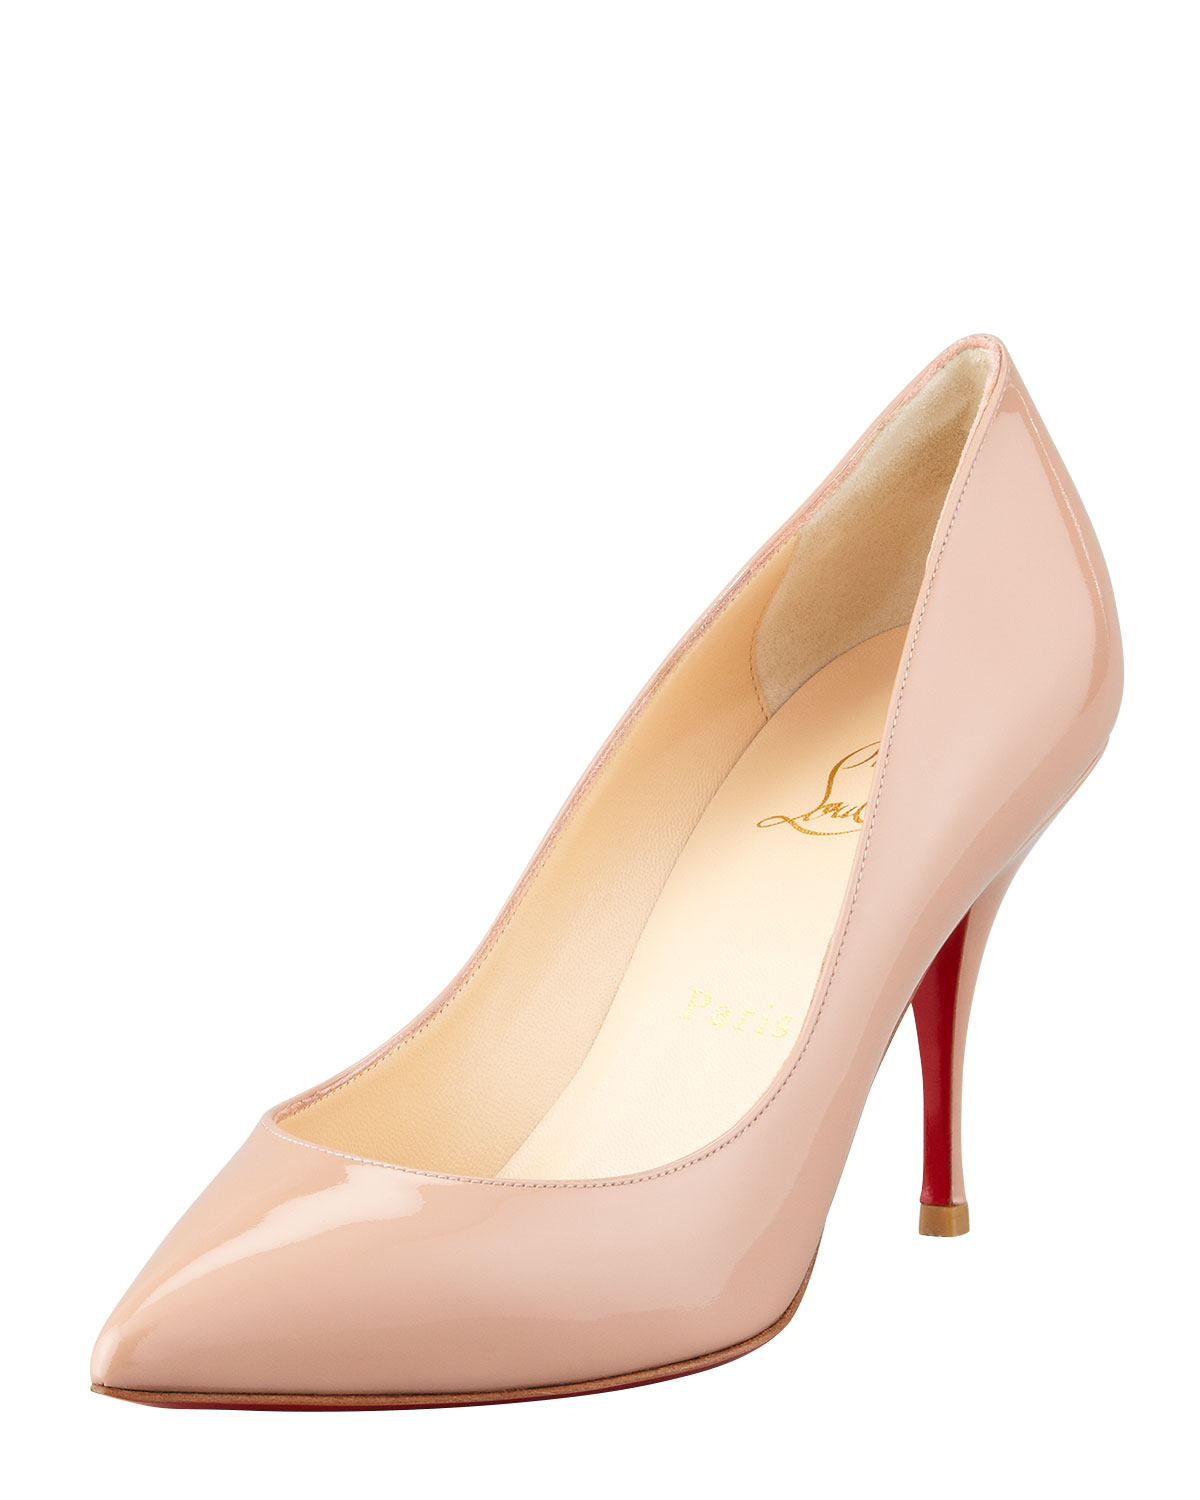 Christian Louboutin Piou Piou Patent Point-Toe Red Sole